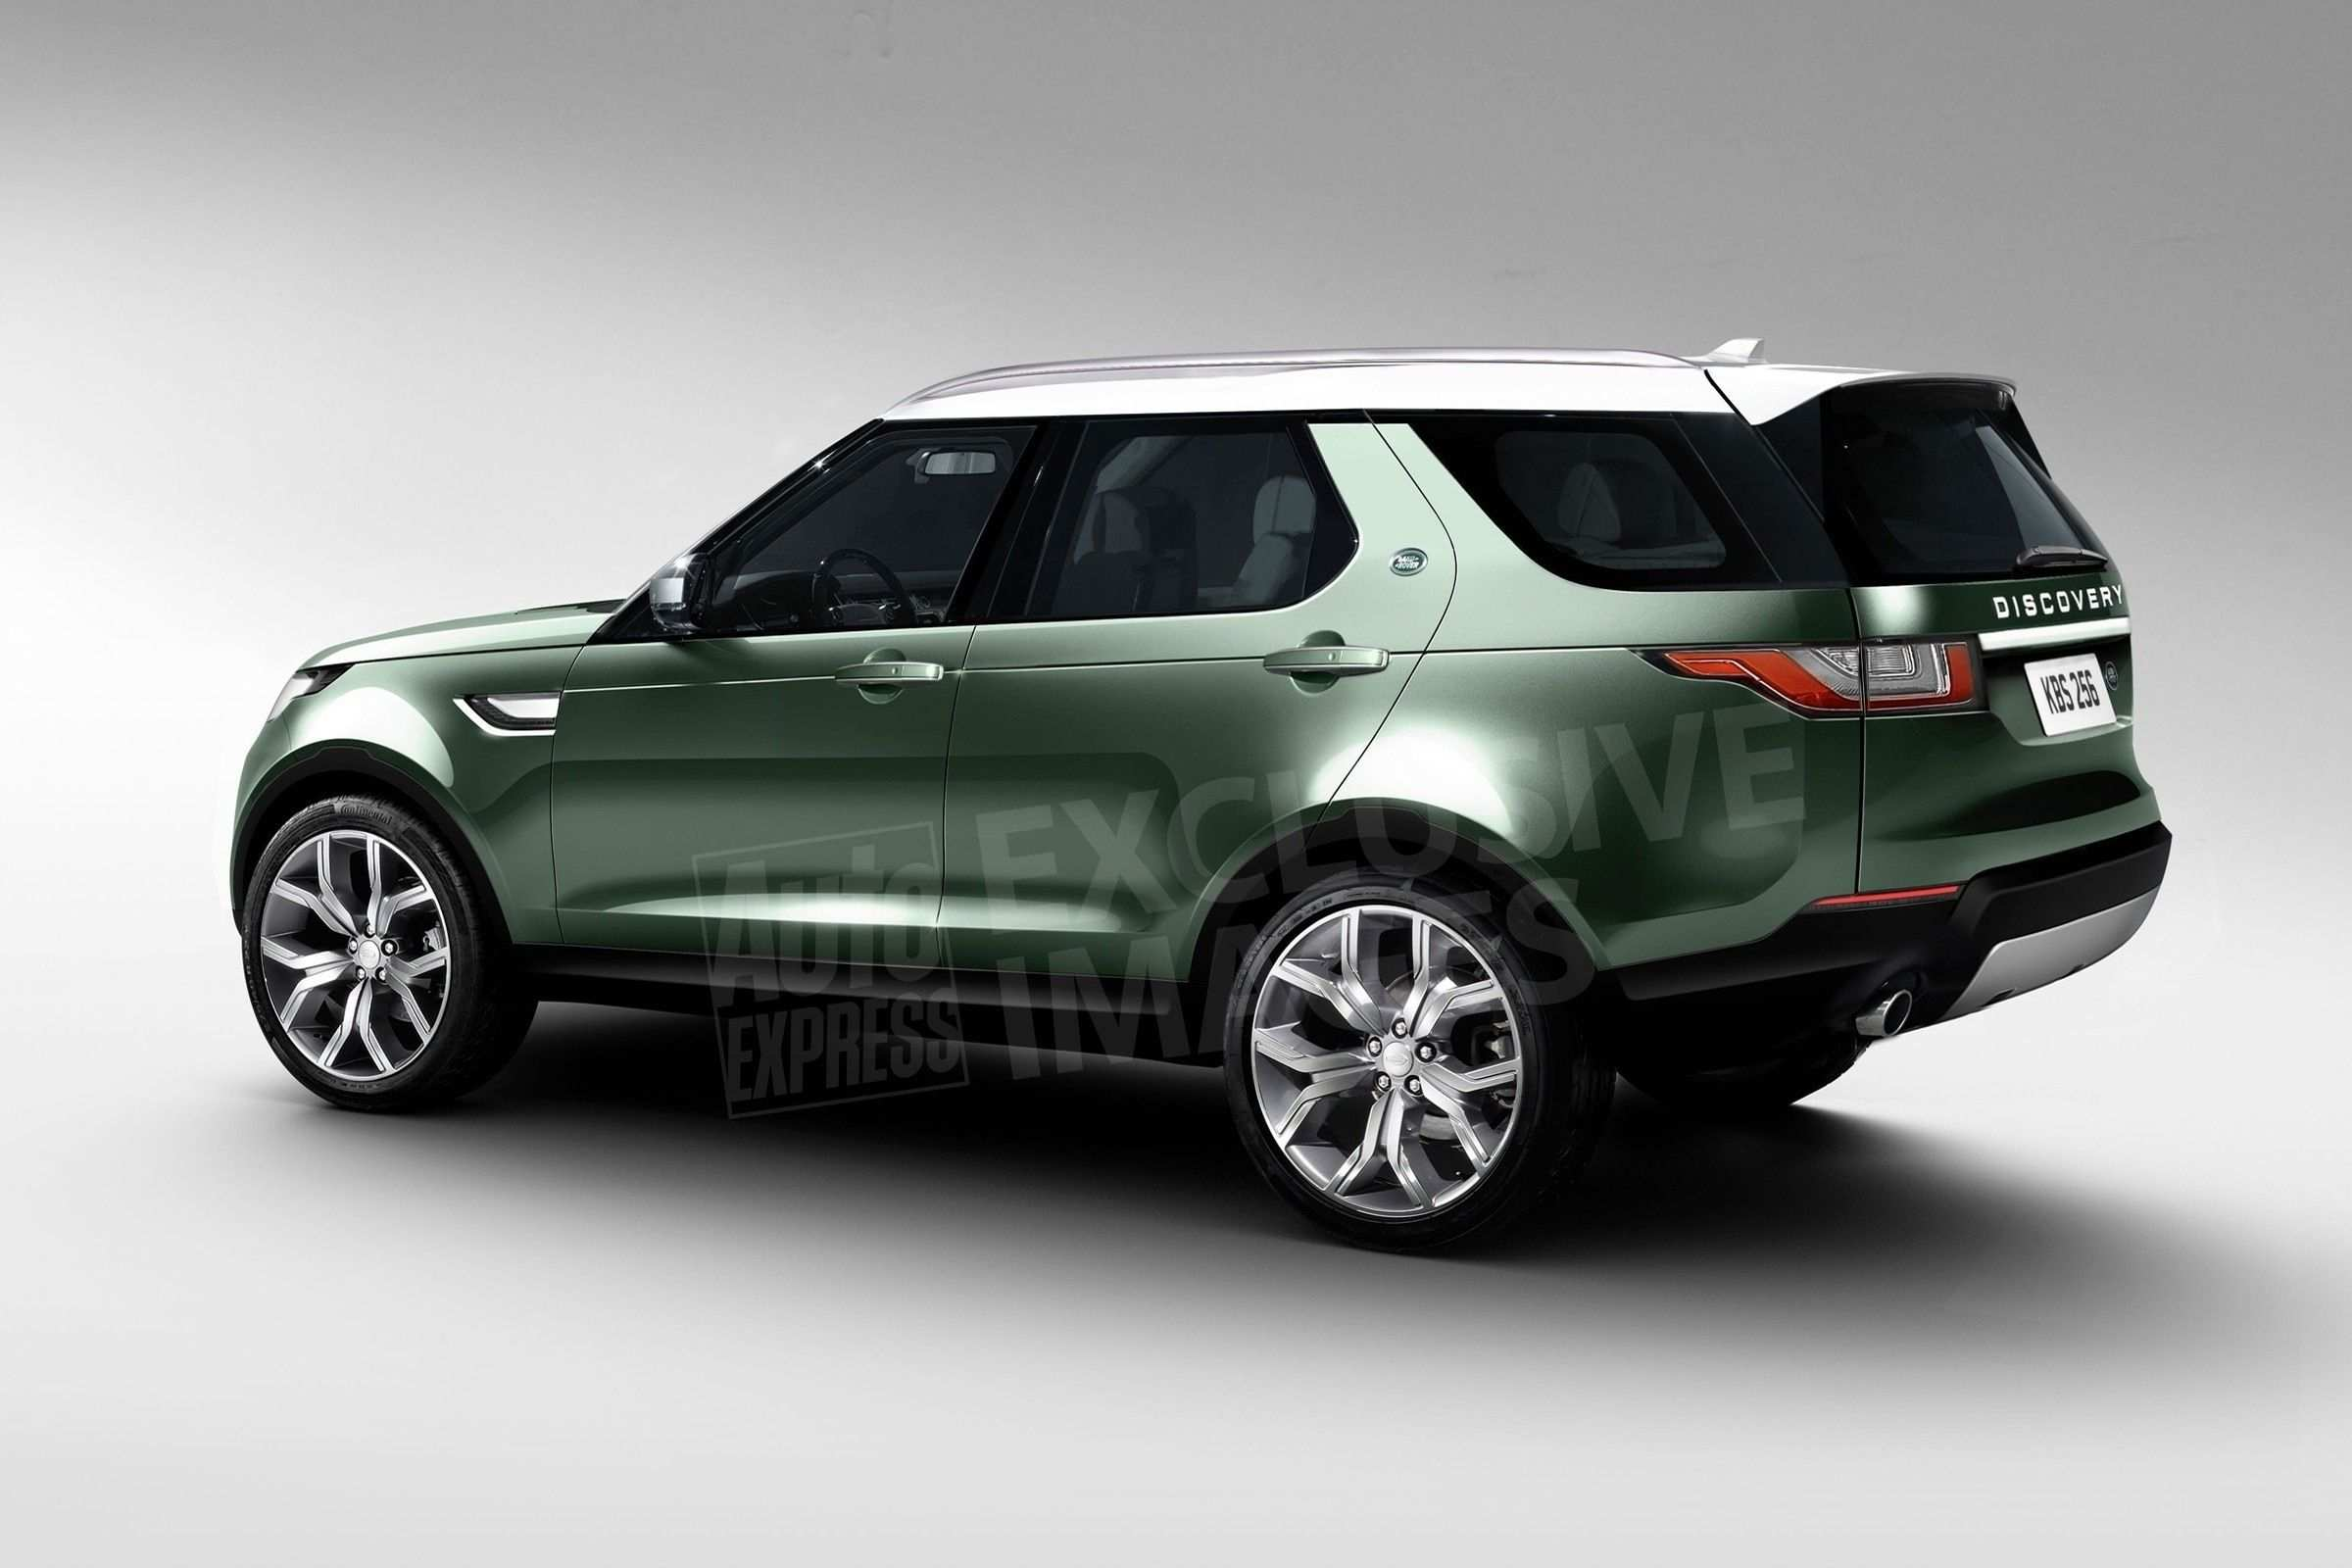 45 New 2020 Land Rover LR4 Release Date with 2020 Land Rover LR4